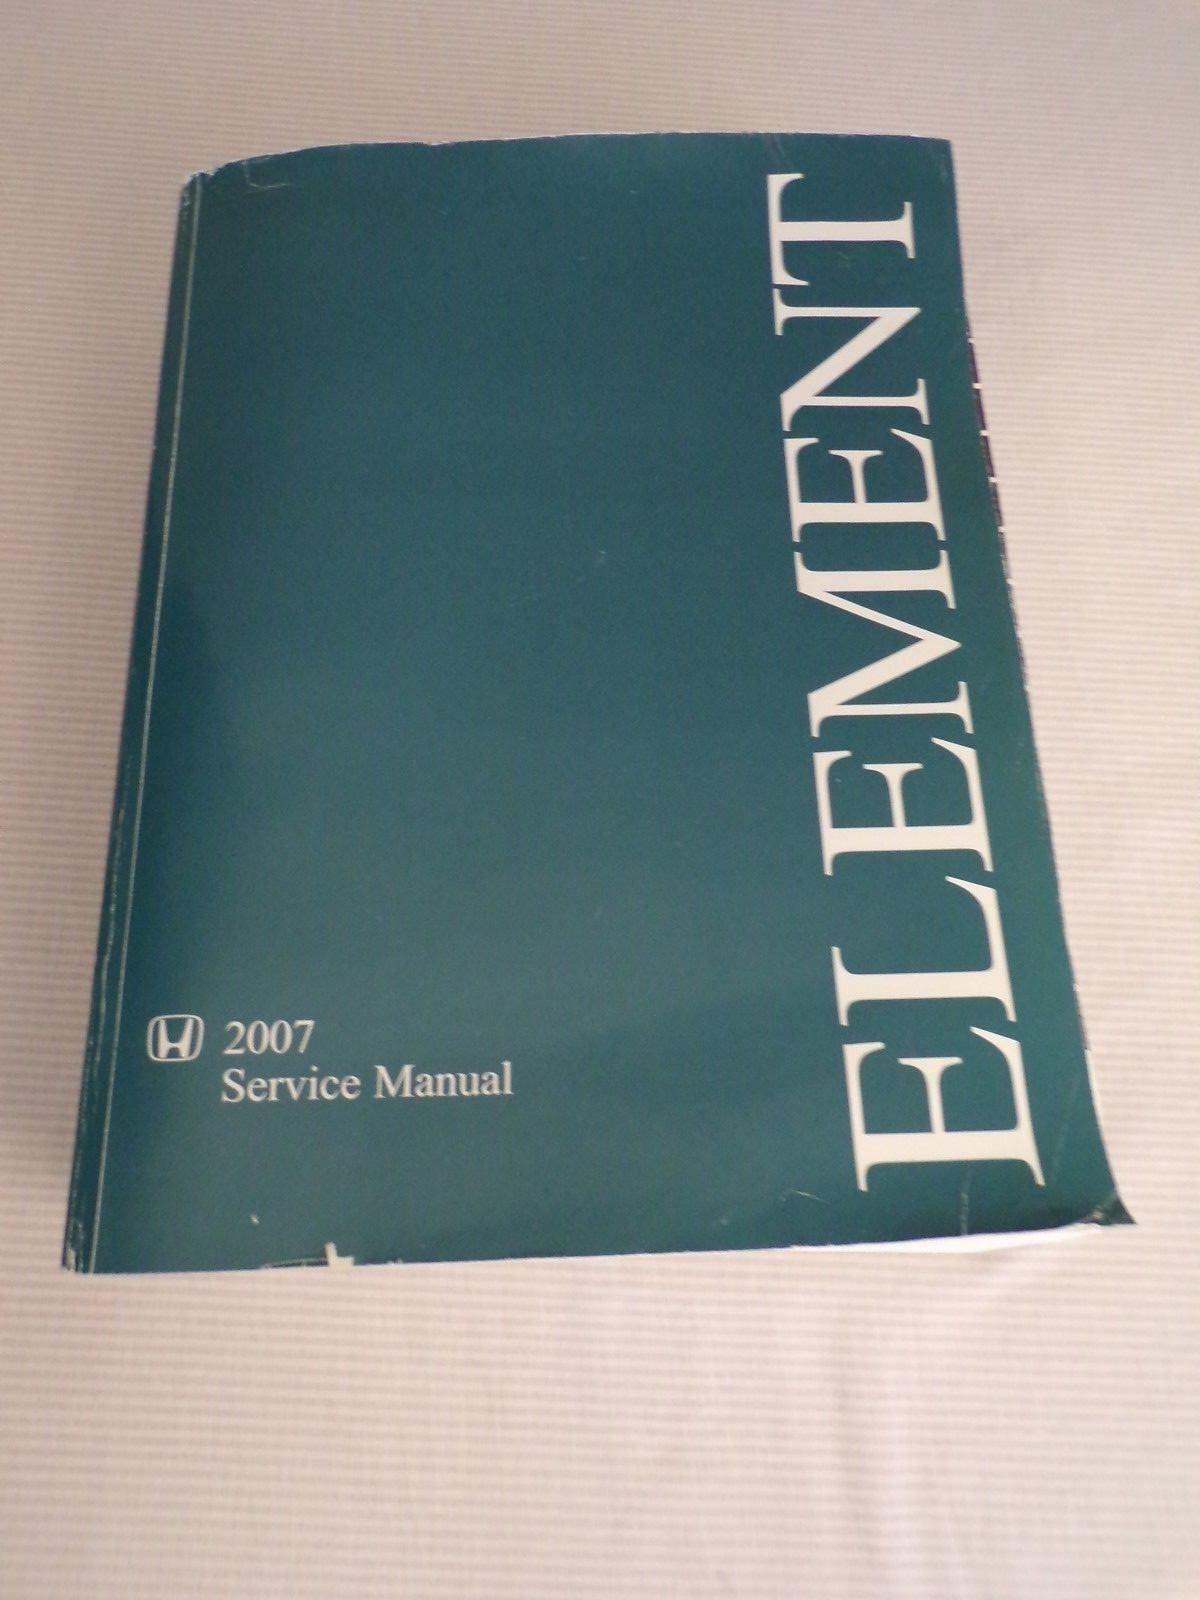 2007 honda element service manual paperback